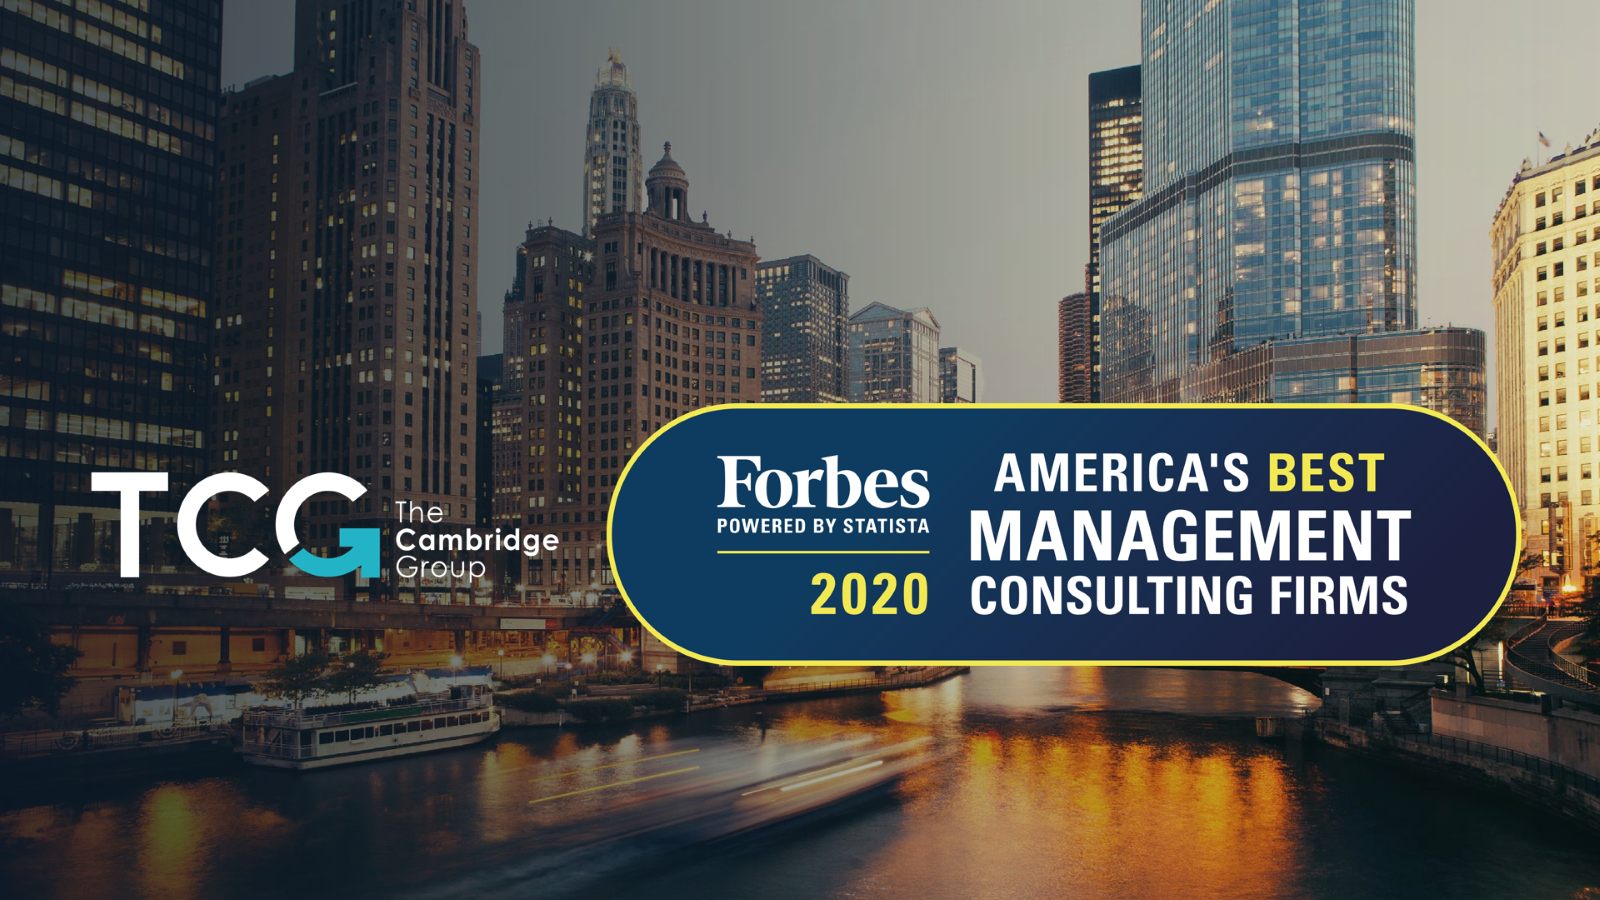 Forbes Magazine once again names TCG one of America's Best Management Consulting Firms thumbnail